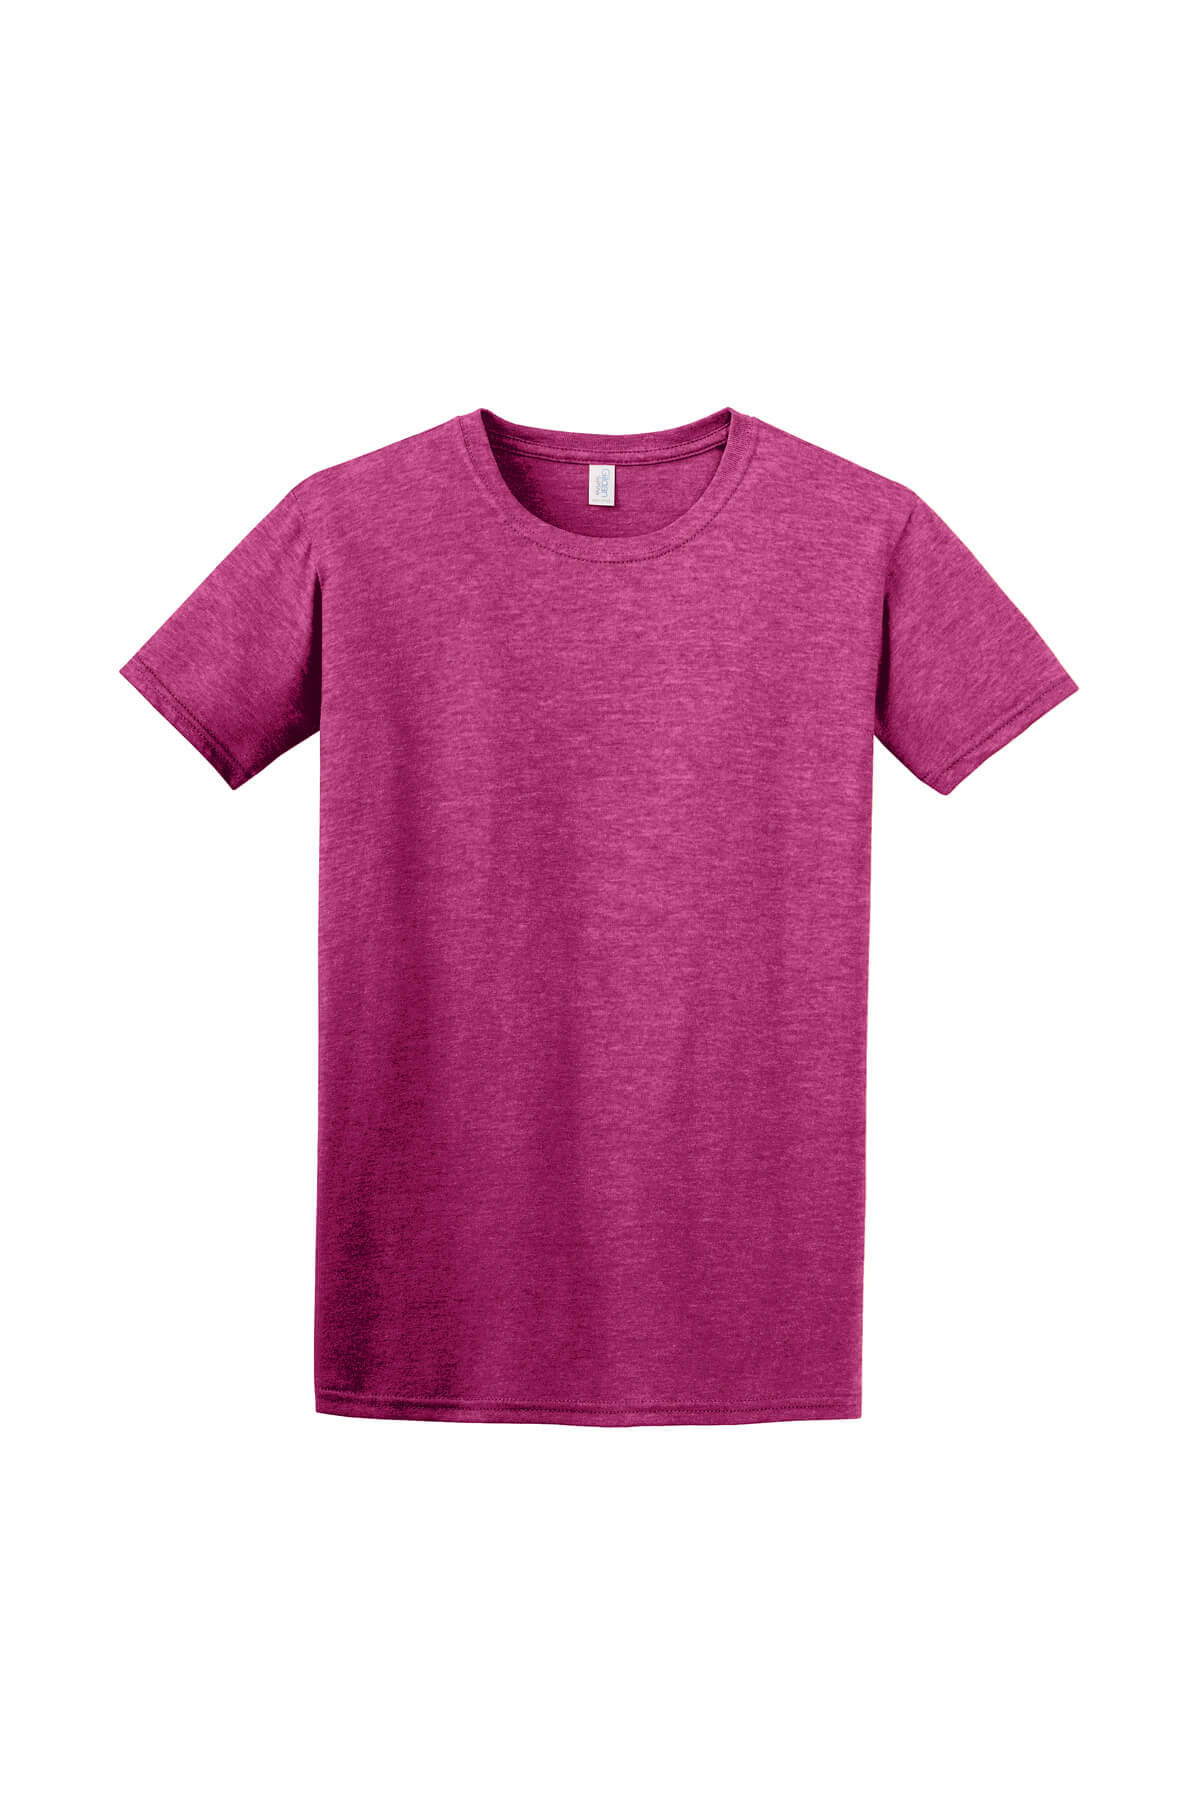 Heliconia T-Shirt Front